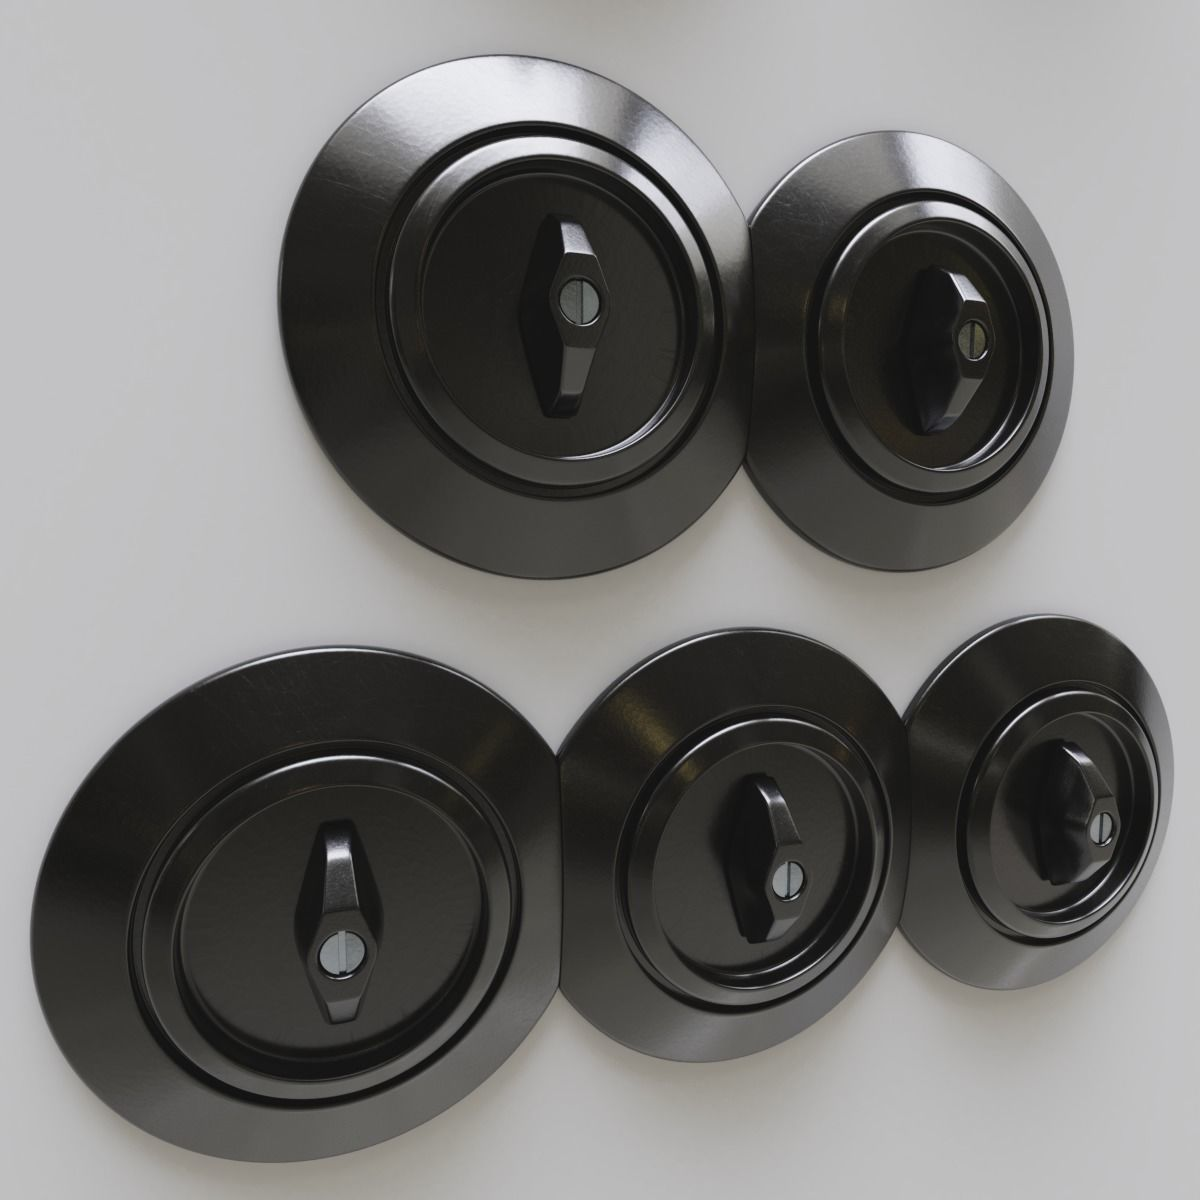 Set of switches and wall sockets